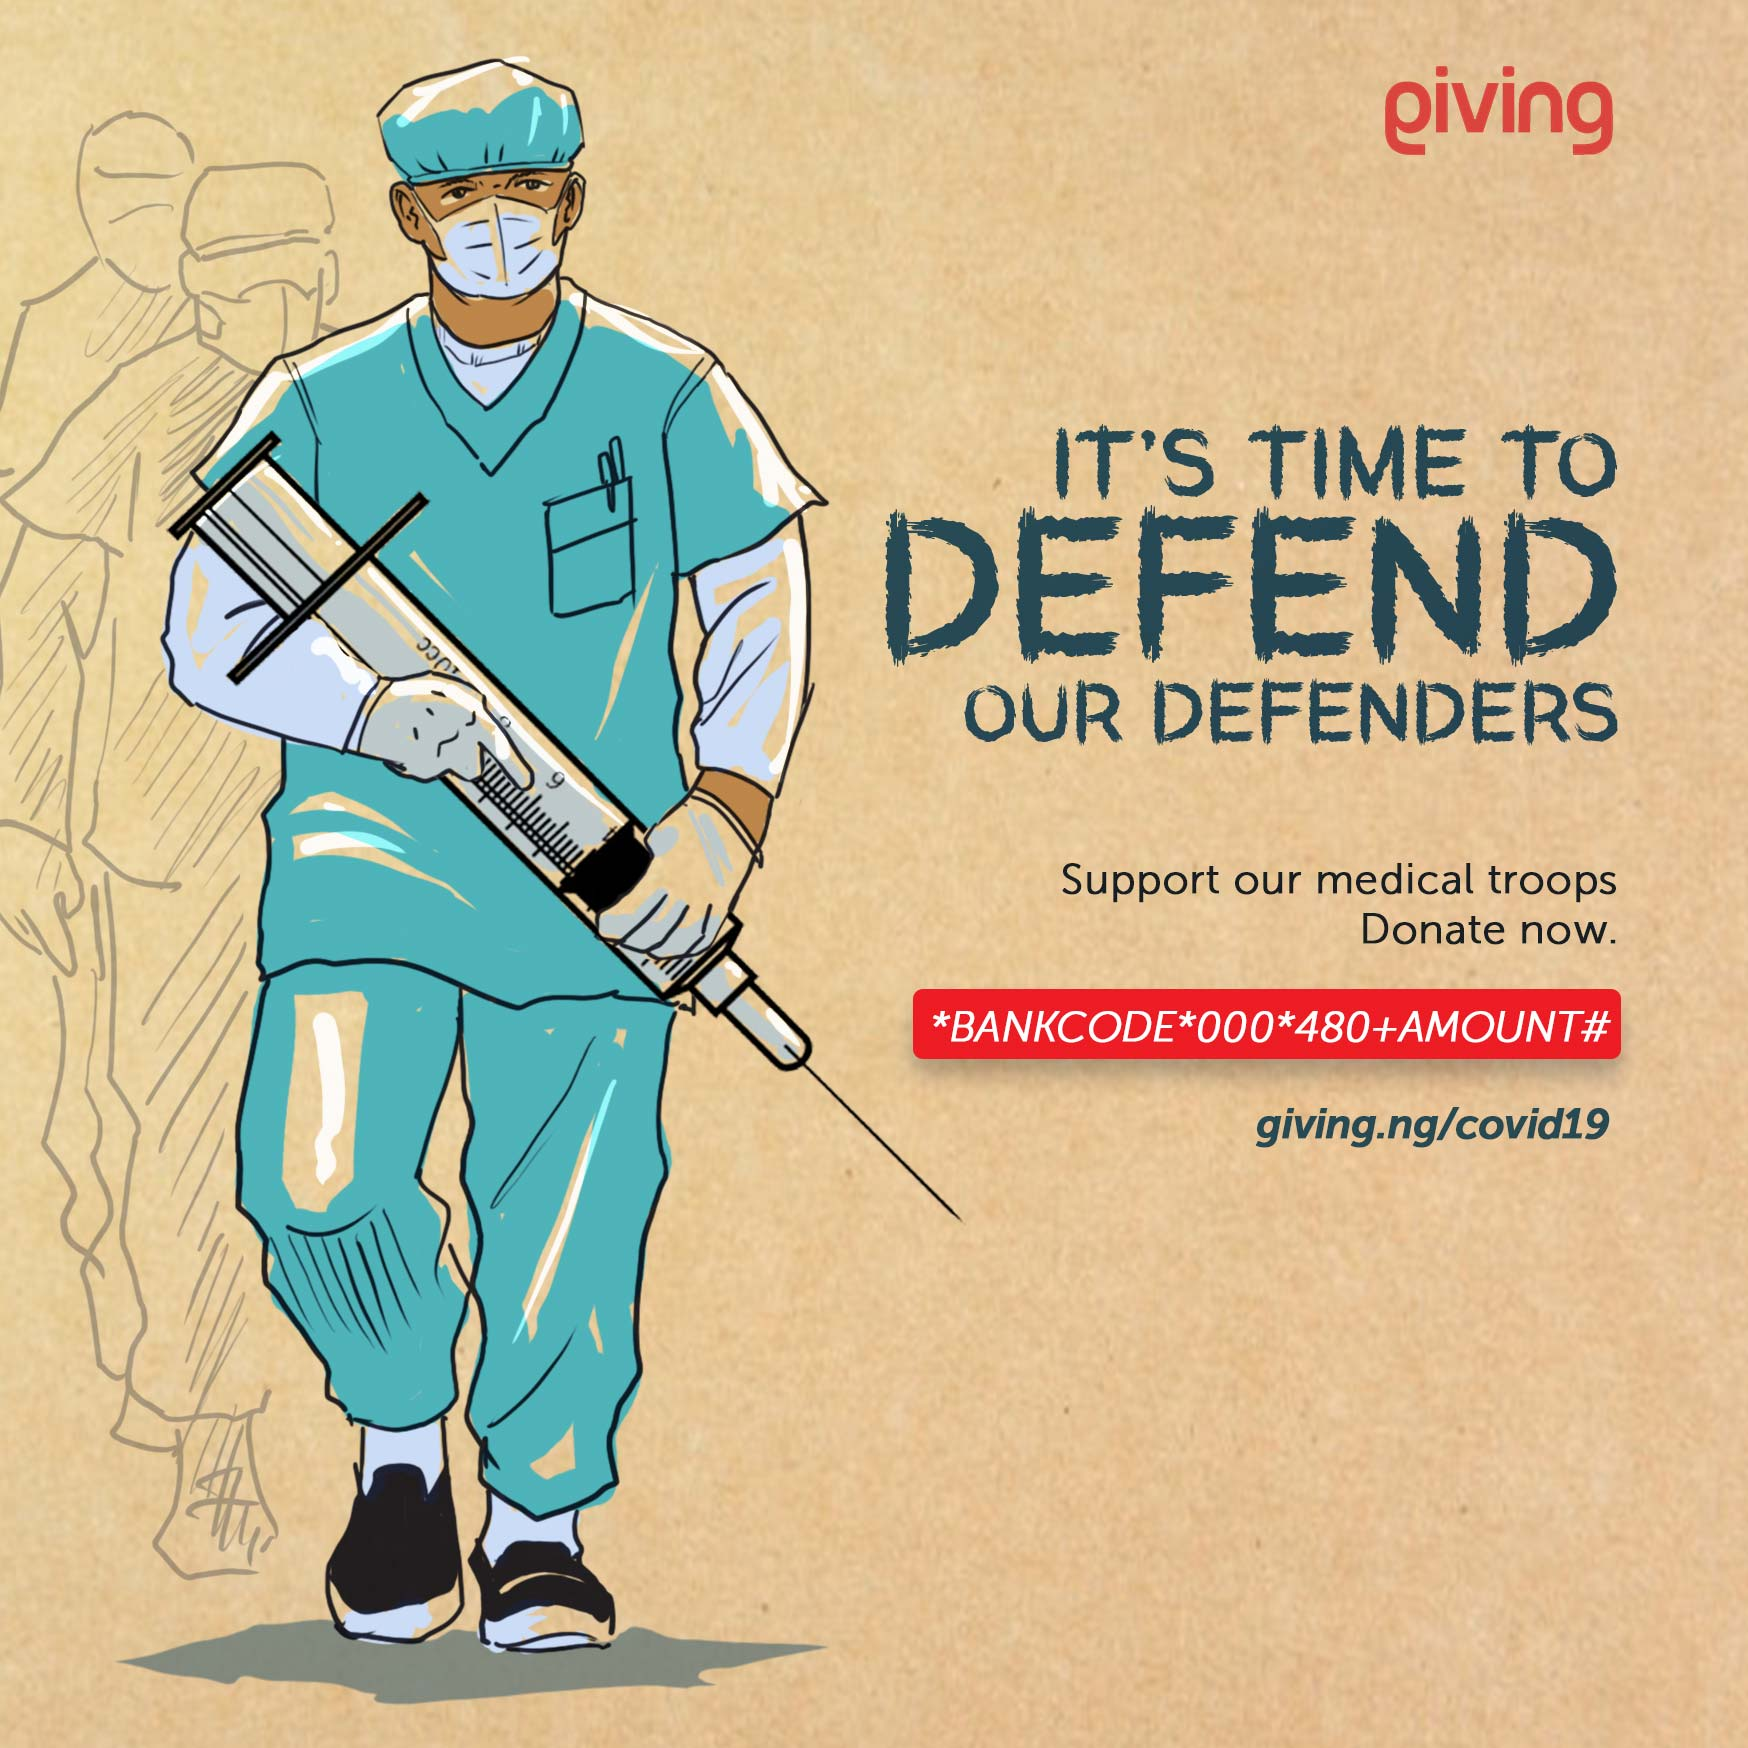 Giving.ng embarks on fundraising to support health workers tackling COVID-19